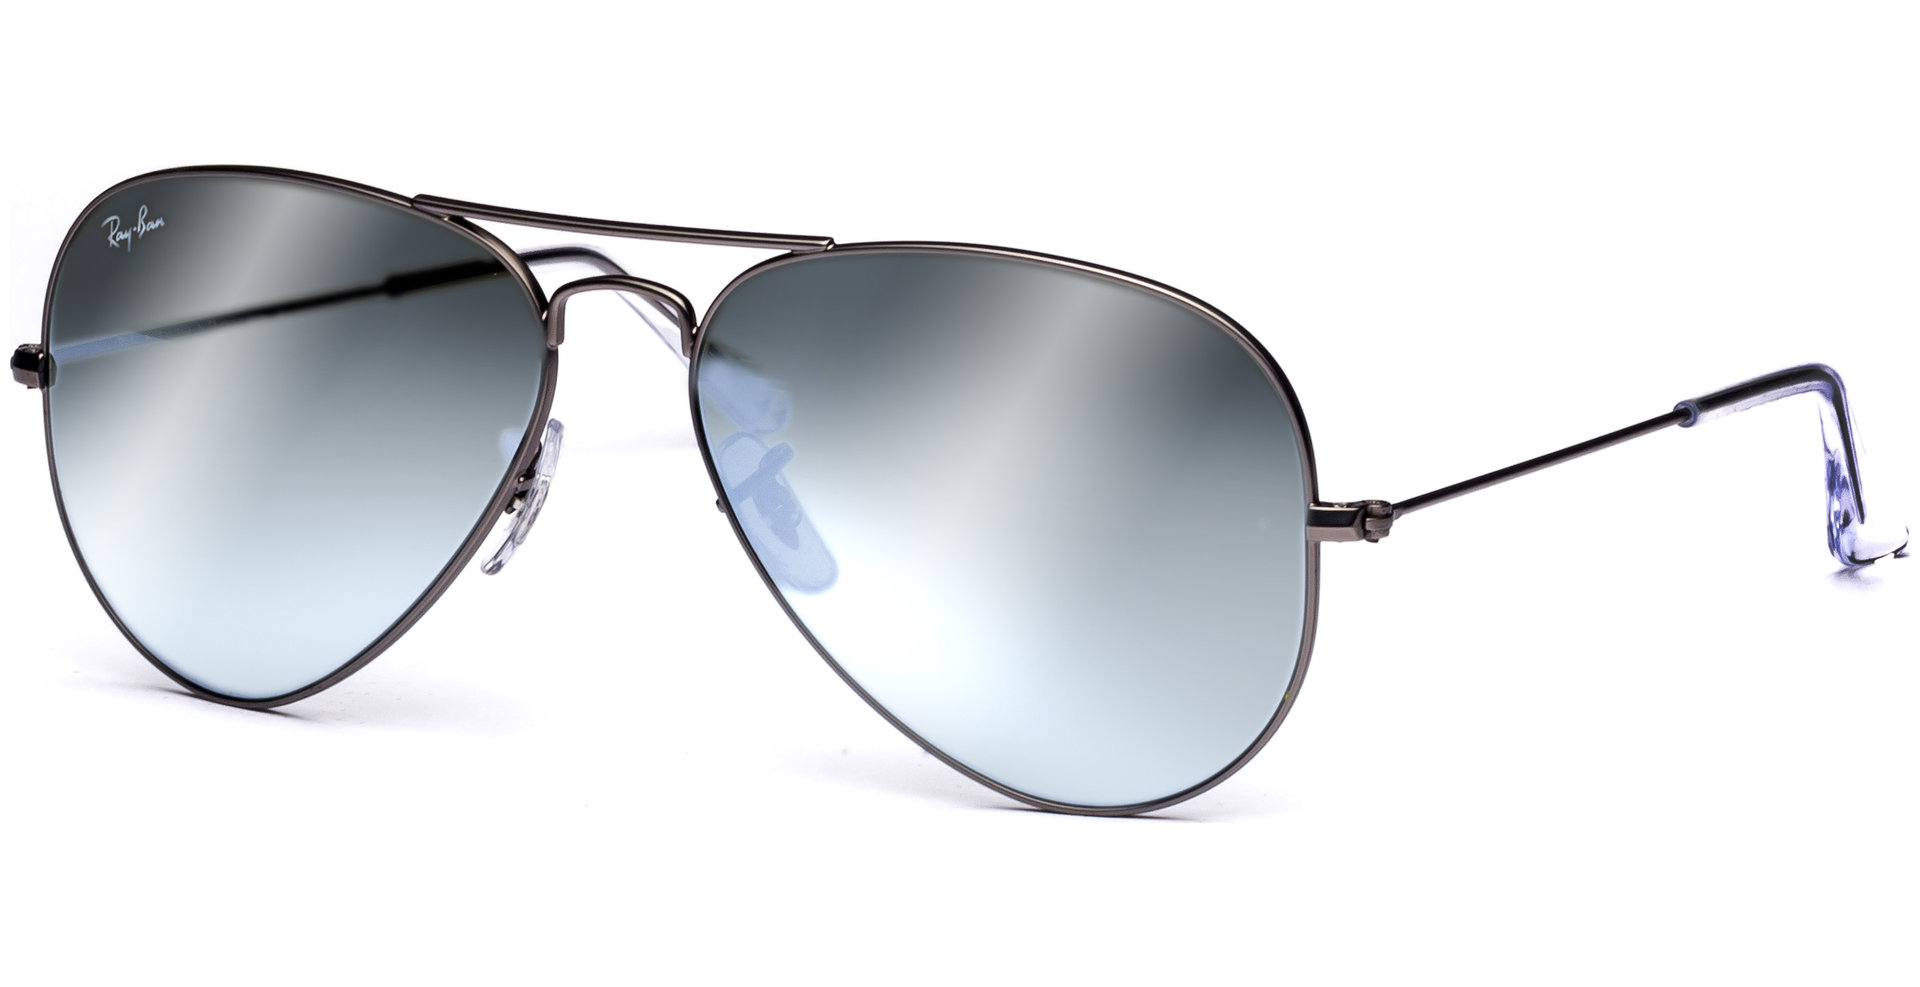 96c6317cff4 Difference Between Ray Ban Aviator Large Metal Small Metal ...